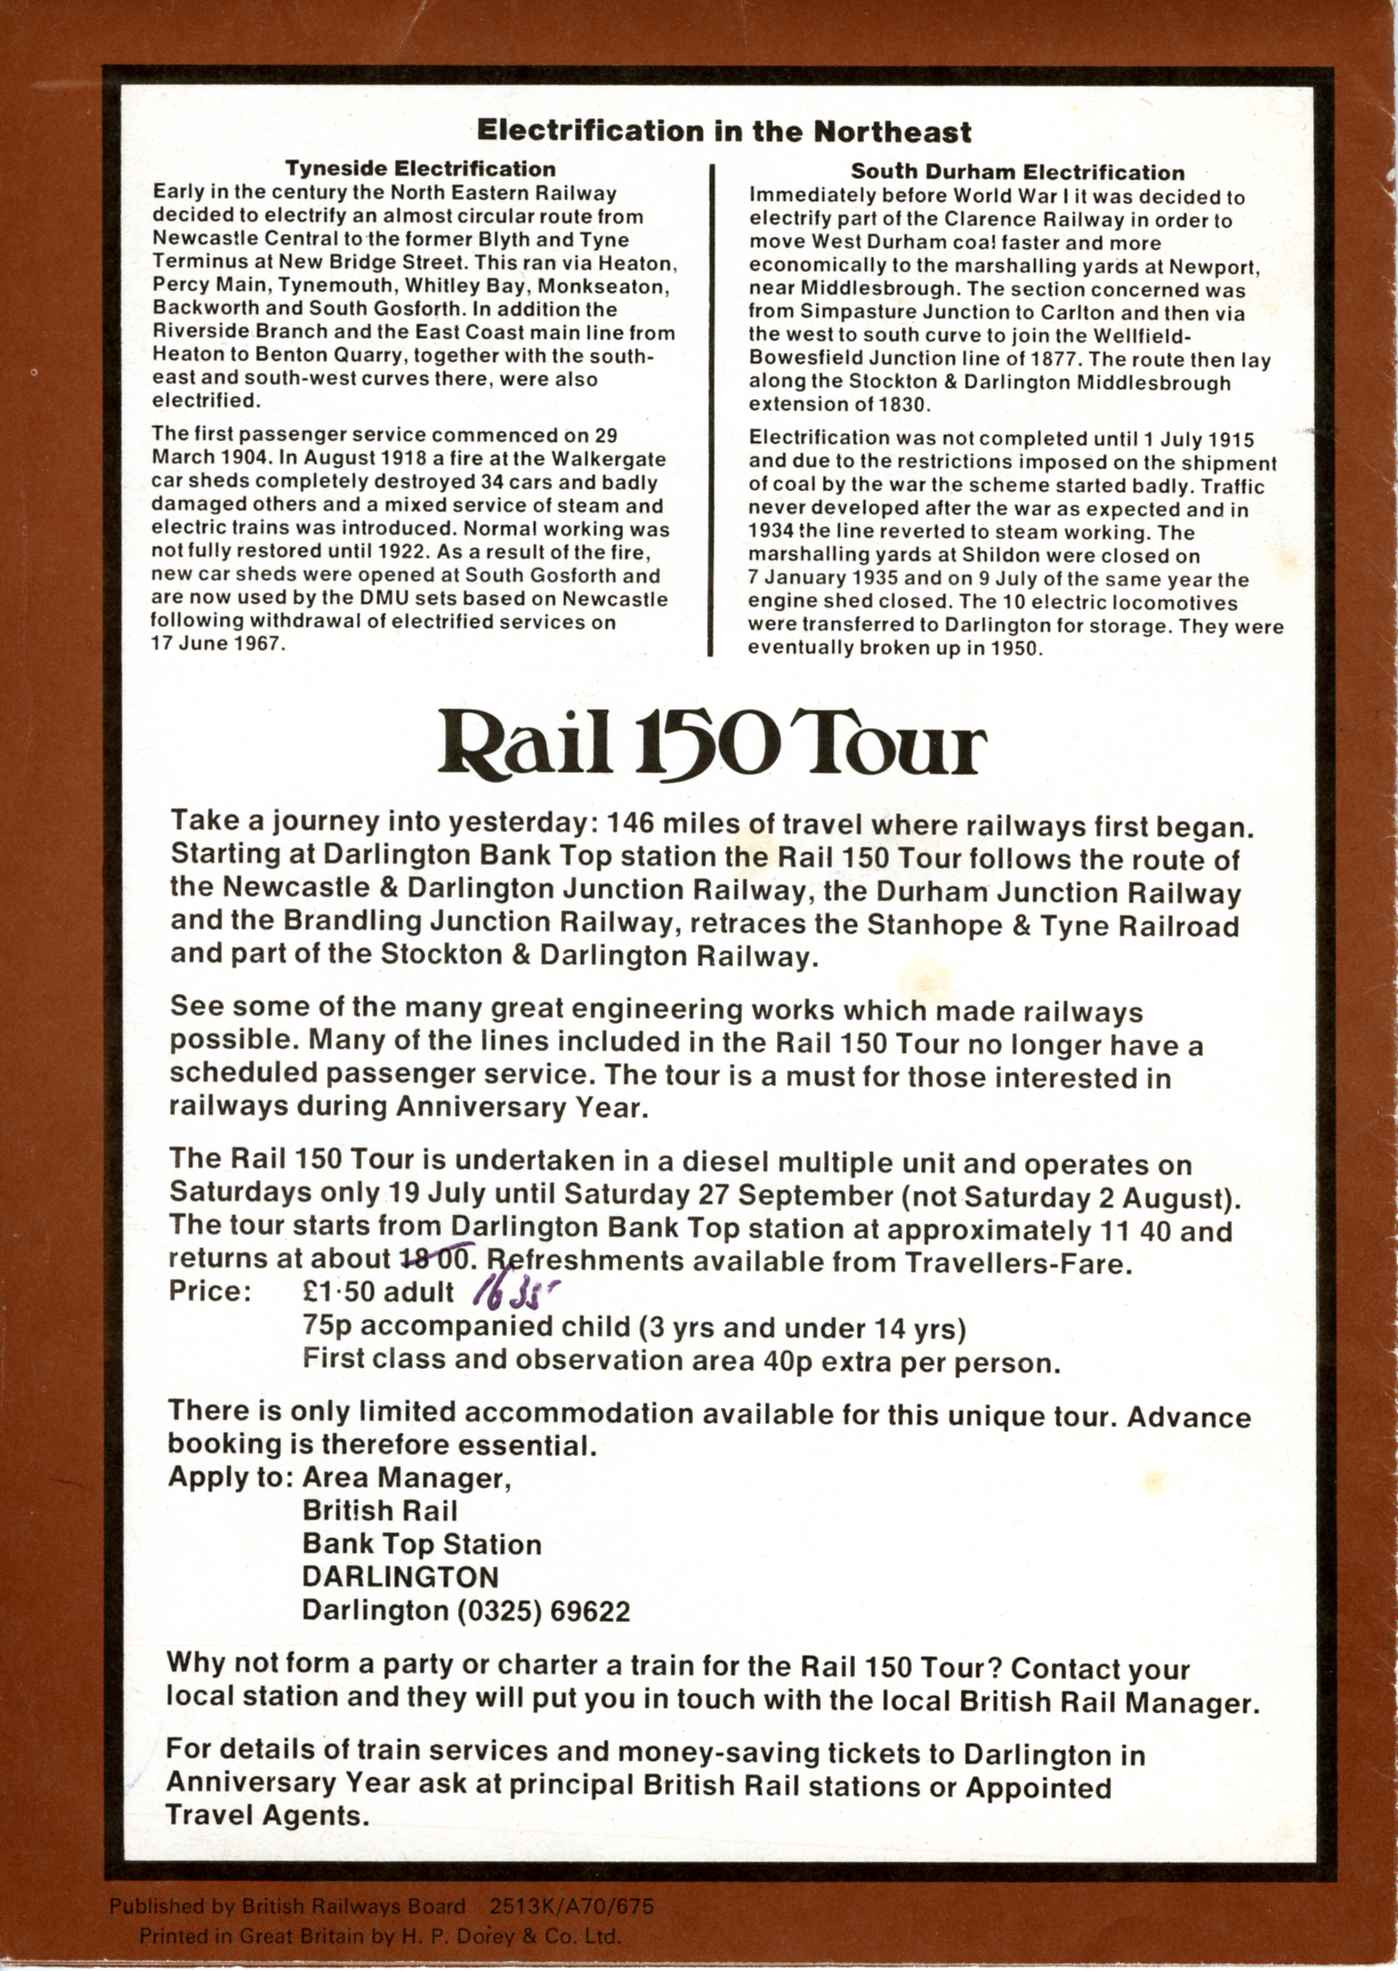 BR Publicity leaflet for the Rail 150 Tour. Courtesy Stephen McGahon